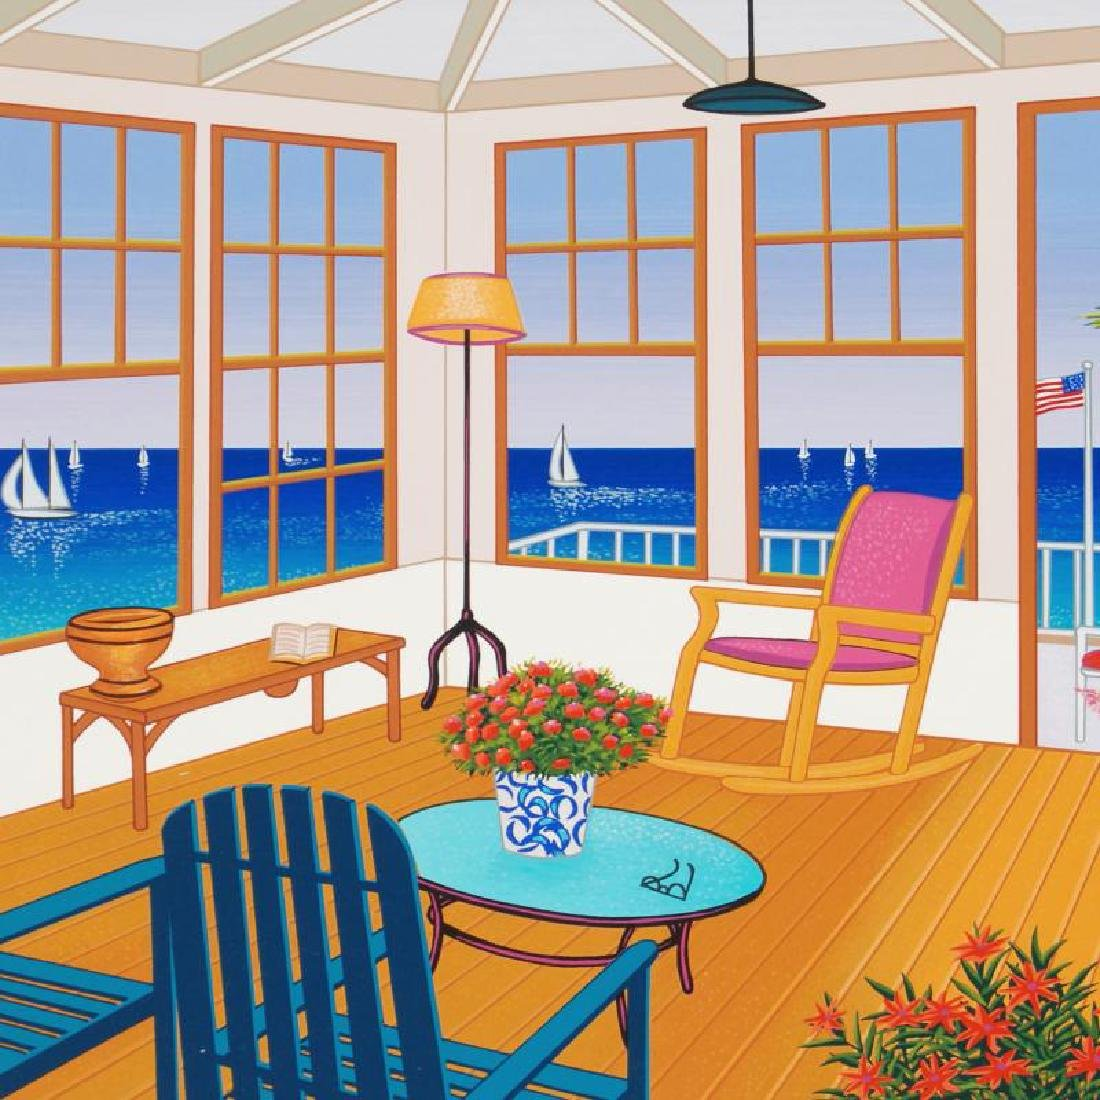 New England Villa Limited Edition Serigraph by Fanch - 3